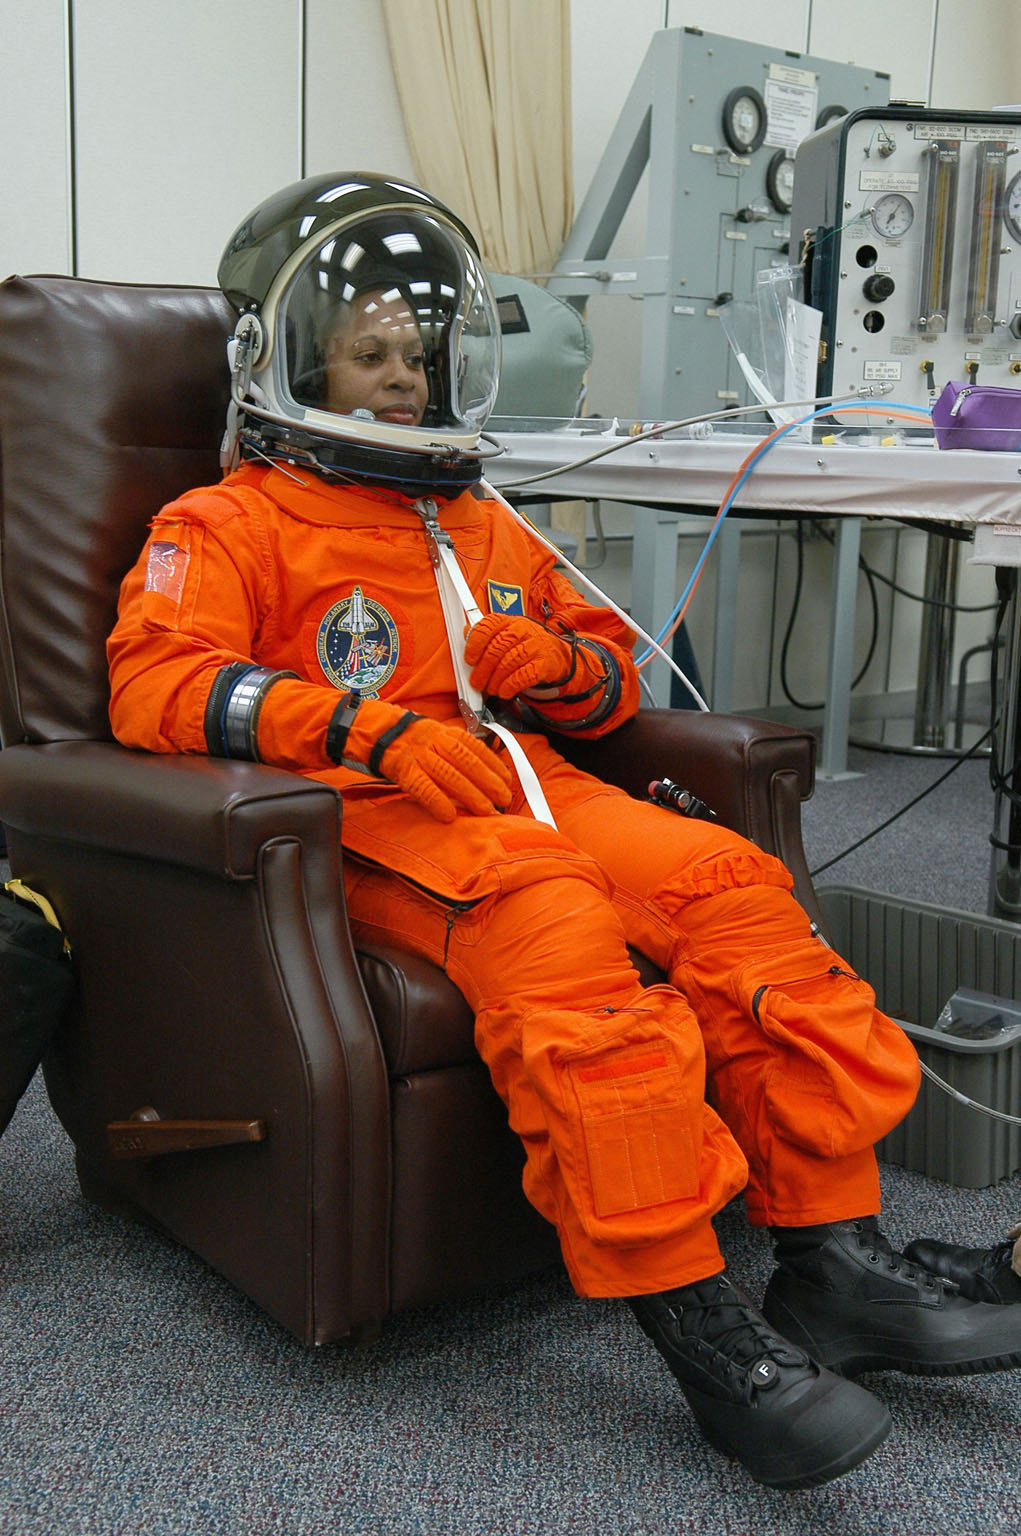 KENNEDY SPACE CENTER, FLA. -- The STS-116 mission crew practices for launch with a simulation of activities, from crew breakfast and suit-up to countdown in the orbiter. In this photo Mission Specialist Joan Higginbotham is suited up before heading to Launch Pad 39B. The STS-116 mission is No. 20 to the International Space Station and construction flight 12A.1. The mission payload is the SPACEHAB module, the P5 integrated truss structure and other key components. Launch is scheduled for no earlier than Dec. 7. Photo credit: NASA/Kim Shiflett